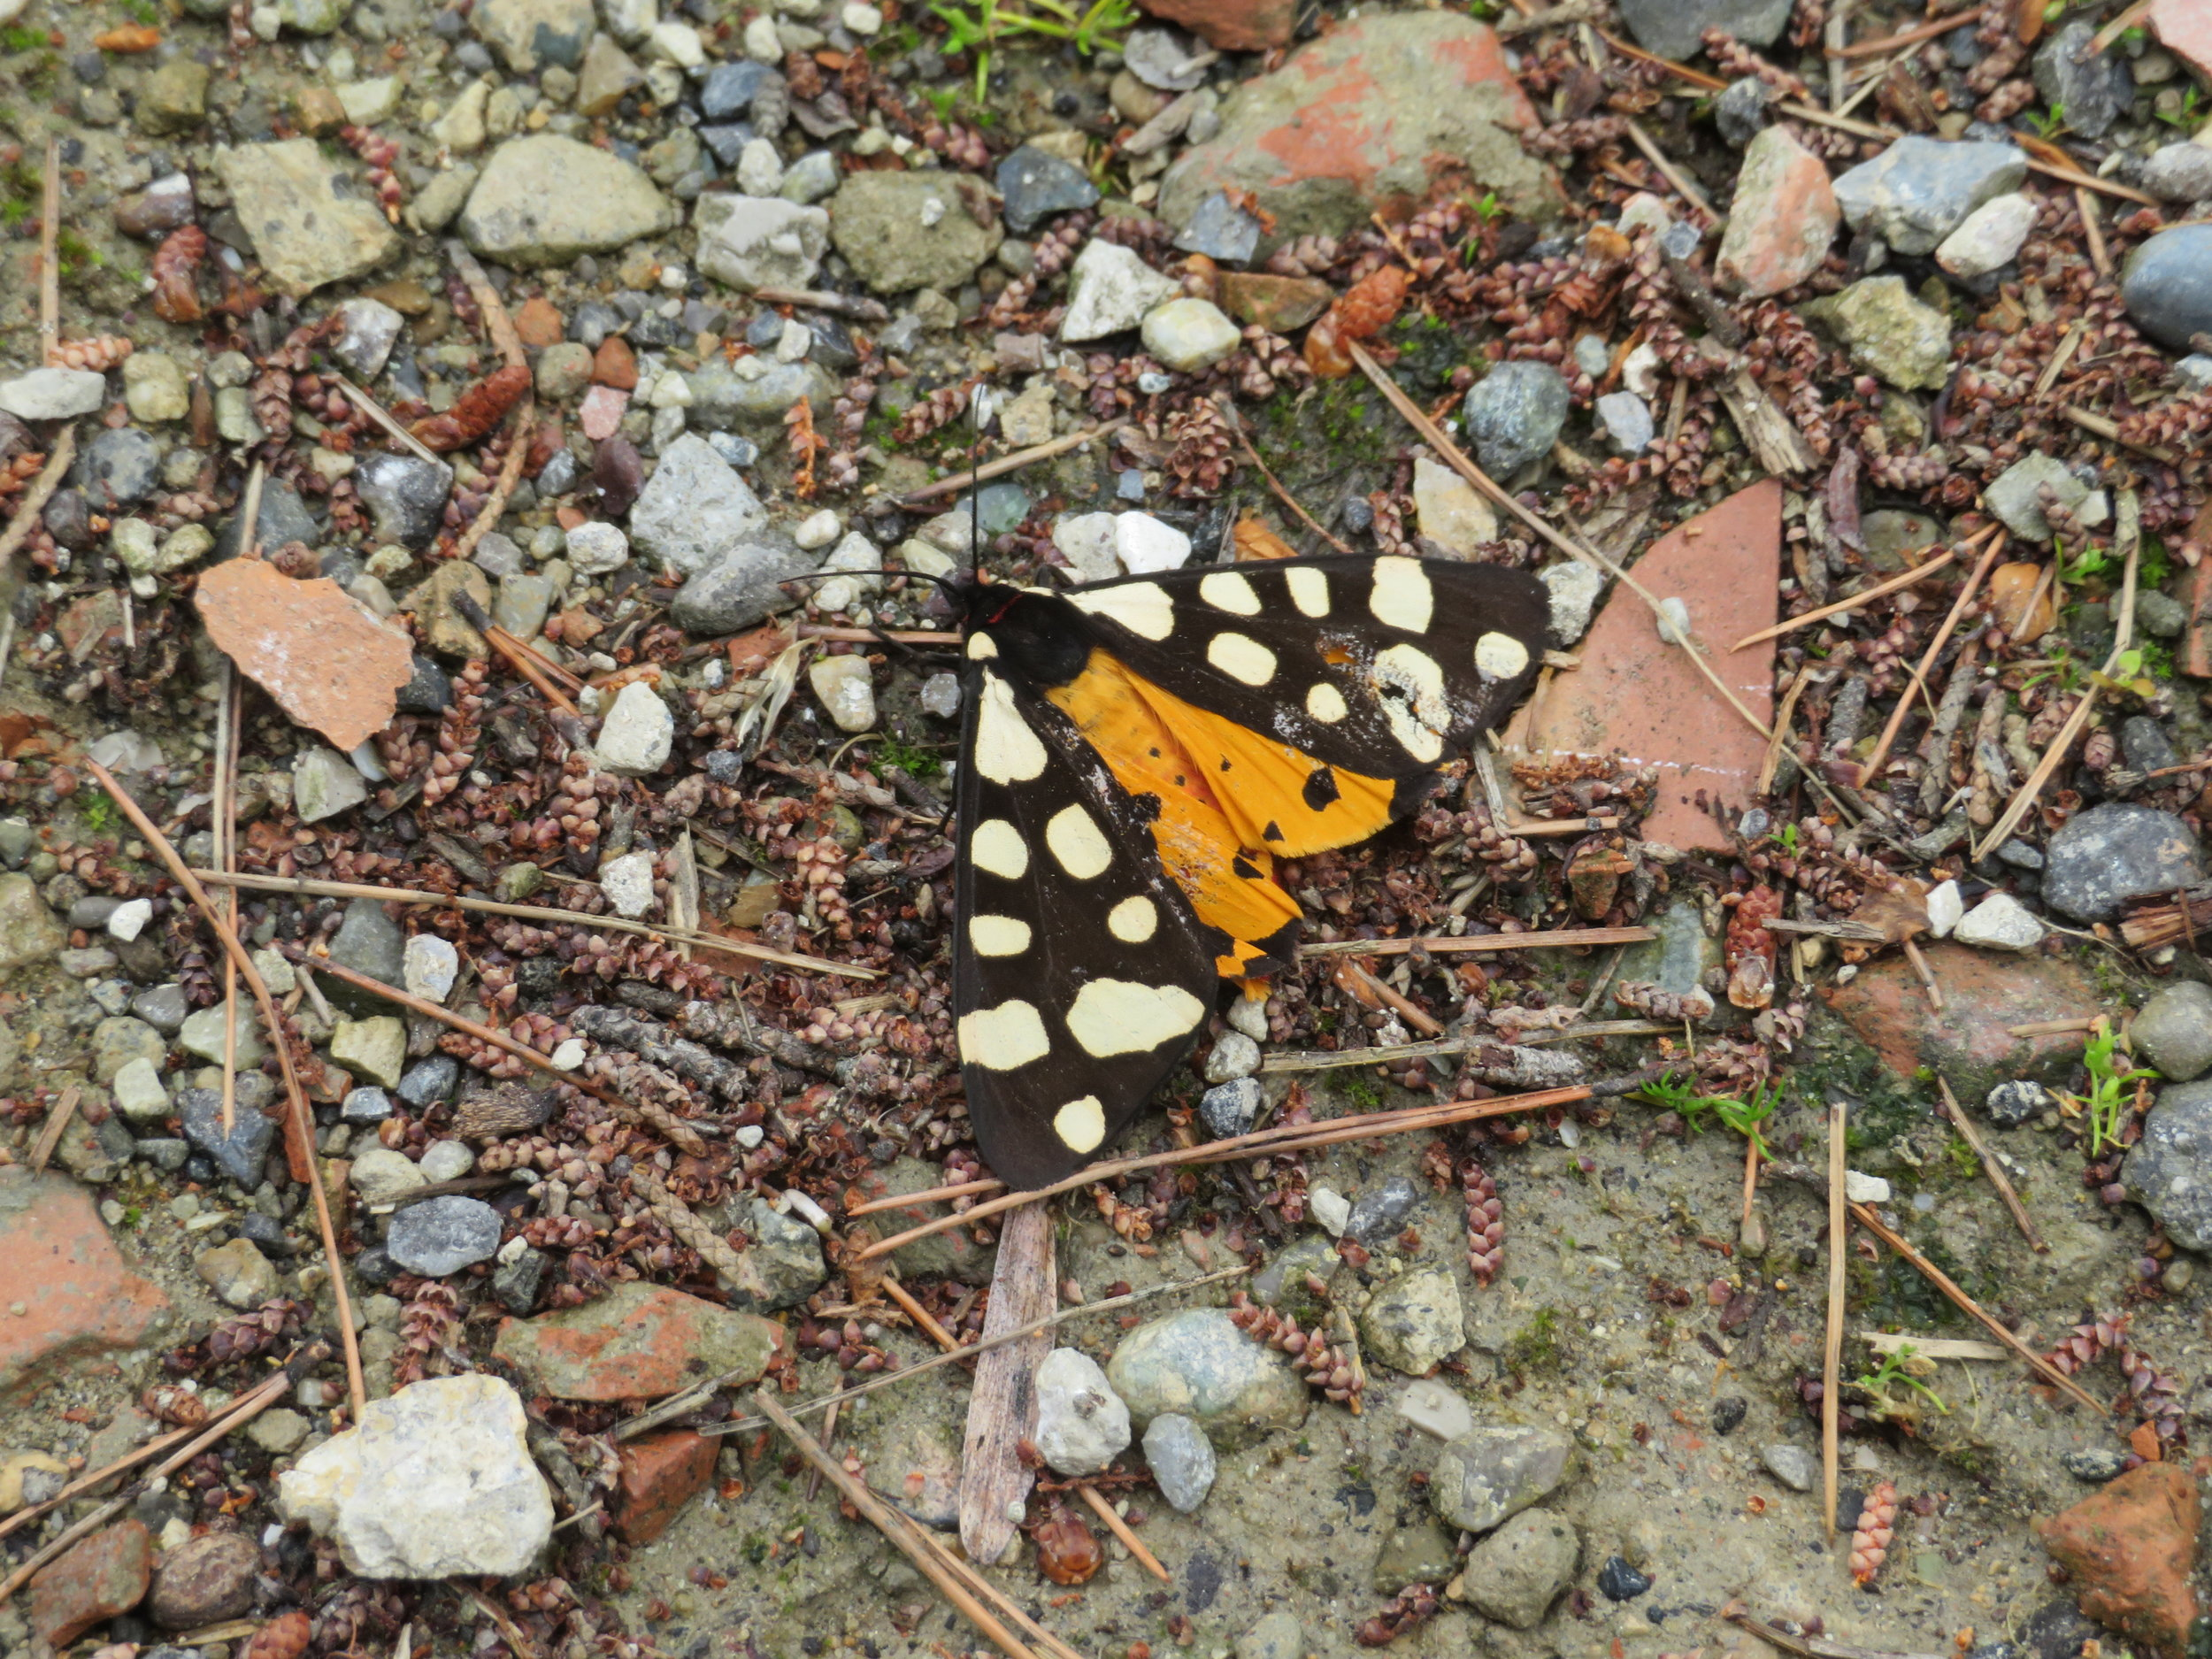 A butterfly fluttered by and brightened up the day.